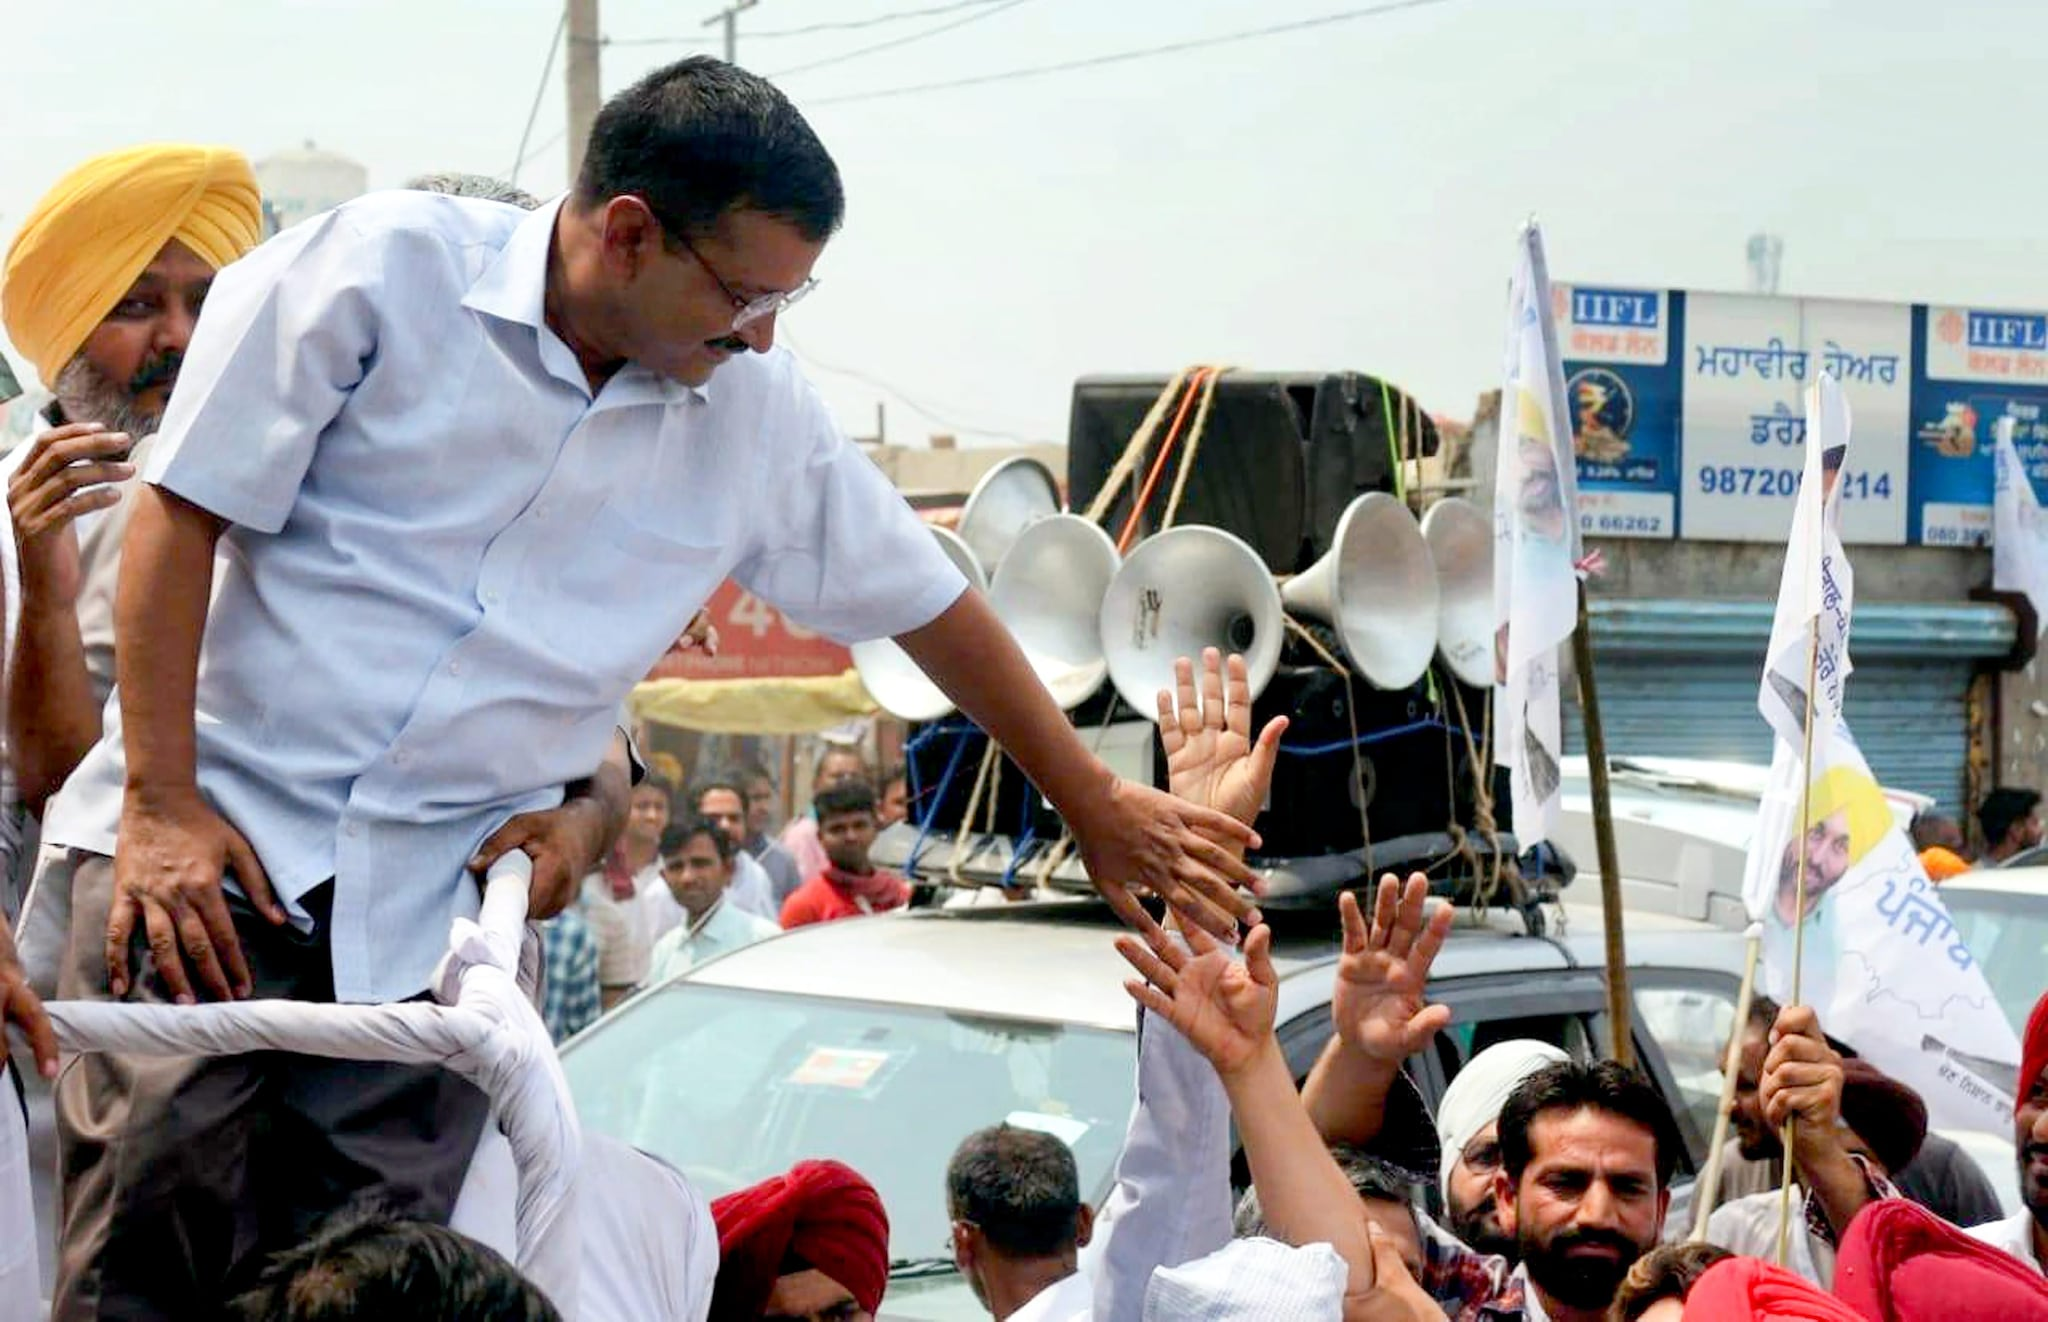 Sangrur: Delhi Chief Minister and AAP convener Arvind Kejriwal during an election campaign roadshow for the seventh and last phase of Lok Sabha polls, in Sangrur, Punjab, Monday, May 13, 2019. (PTI Photo)  (PTI5_13_2019_000141B)